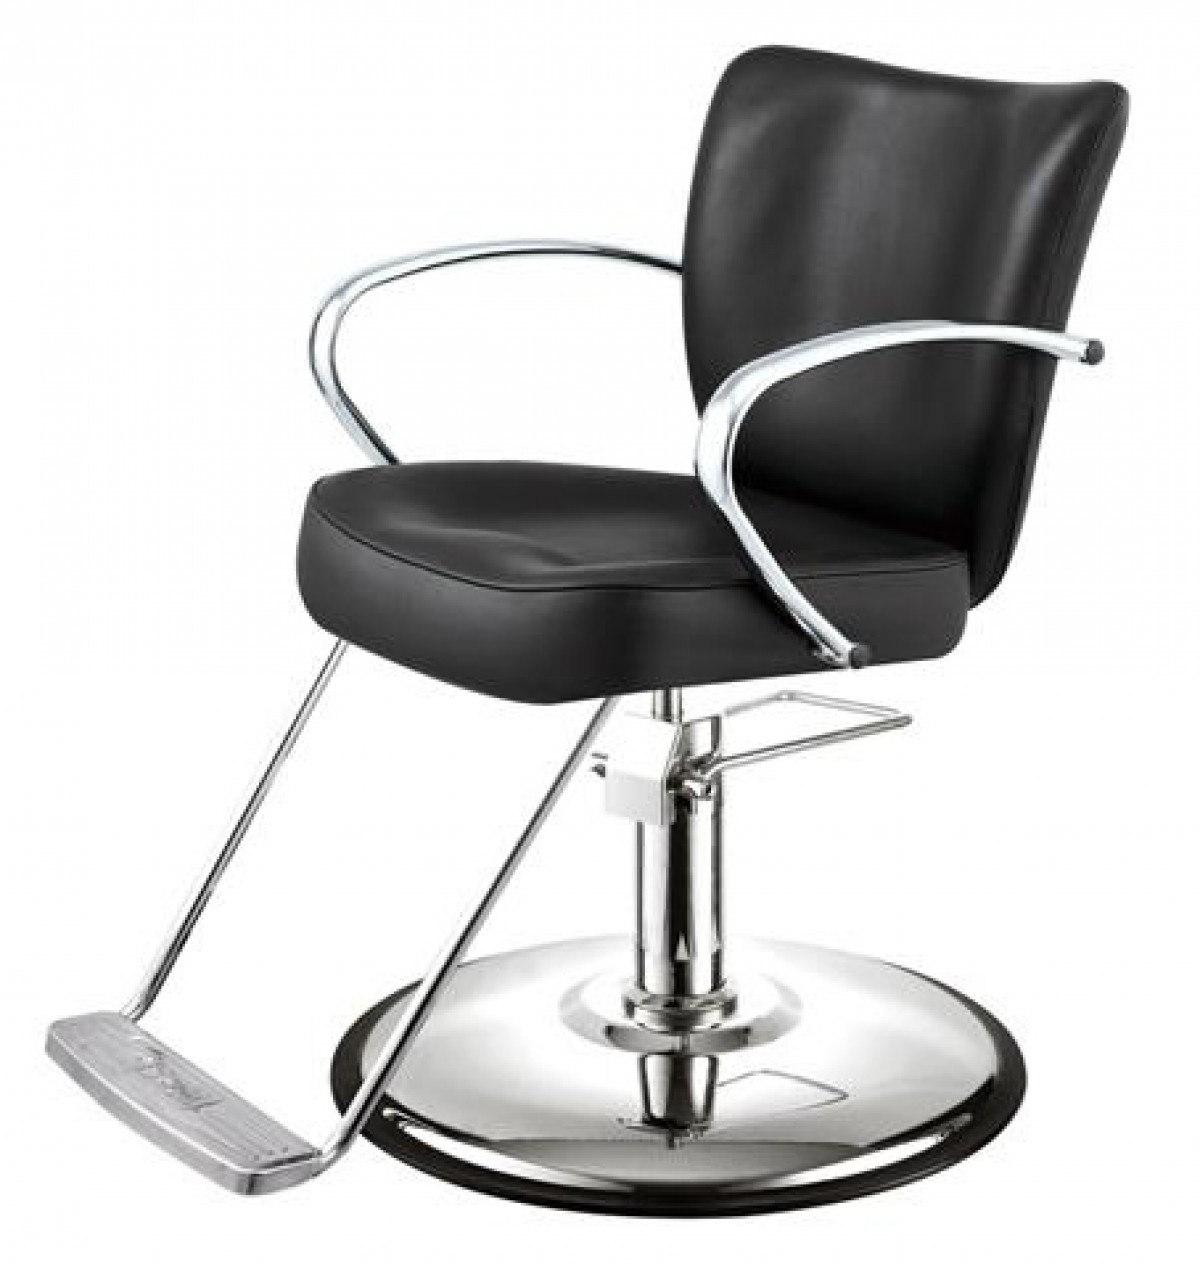 """Hair Styling Chairs Venus"""" Salon Styling Chair Free Shipping"""